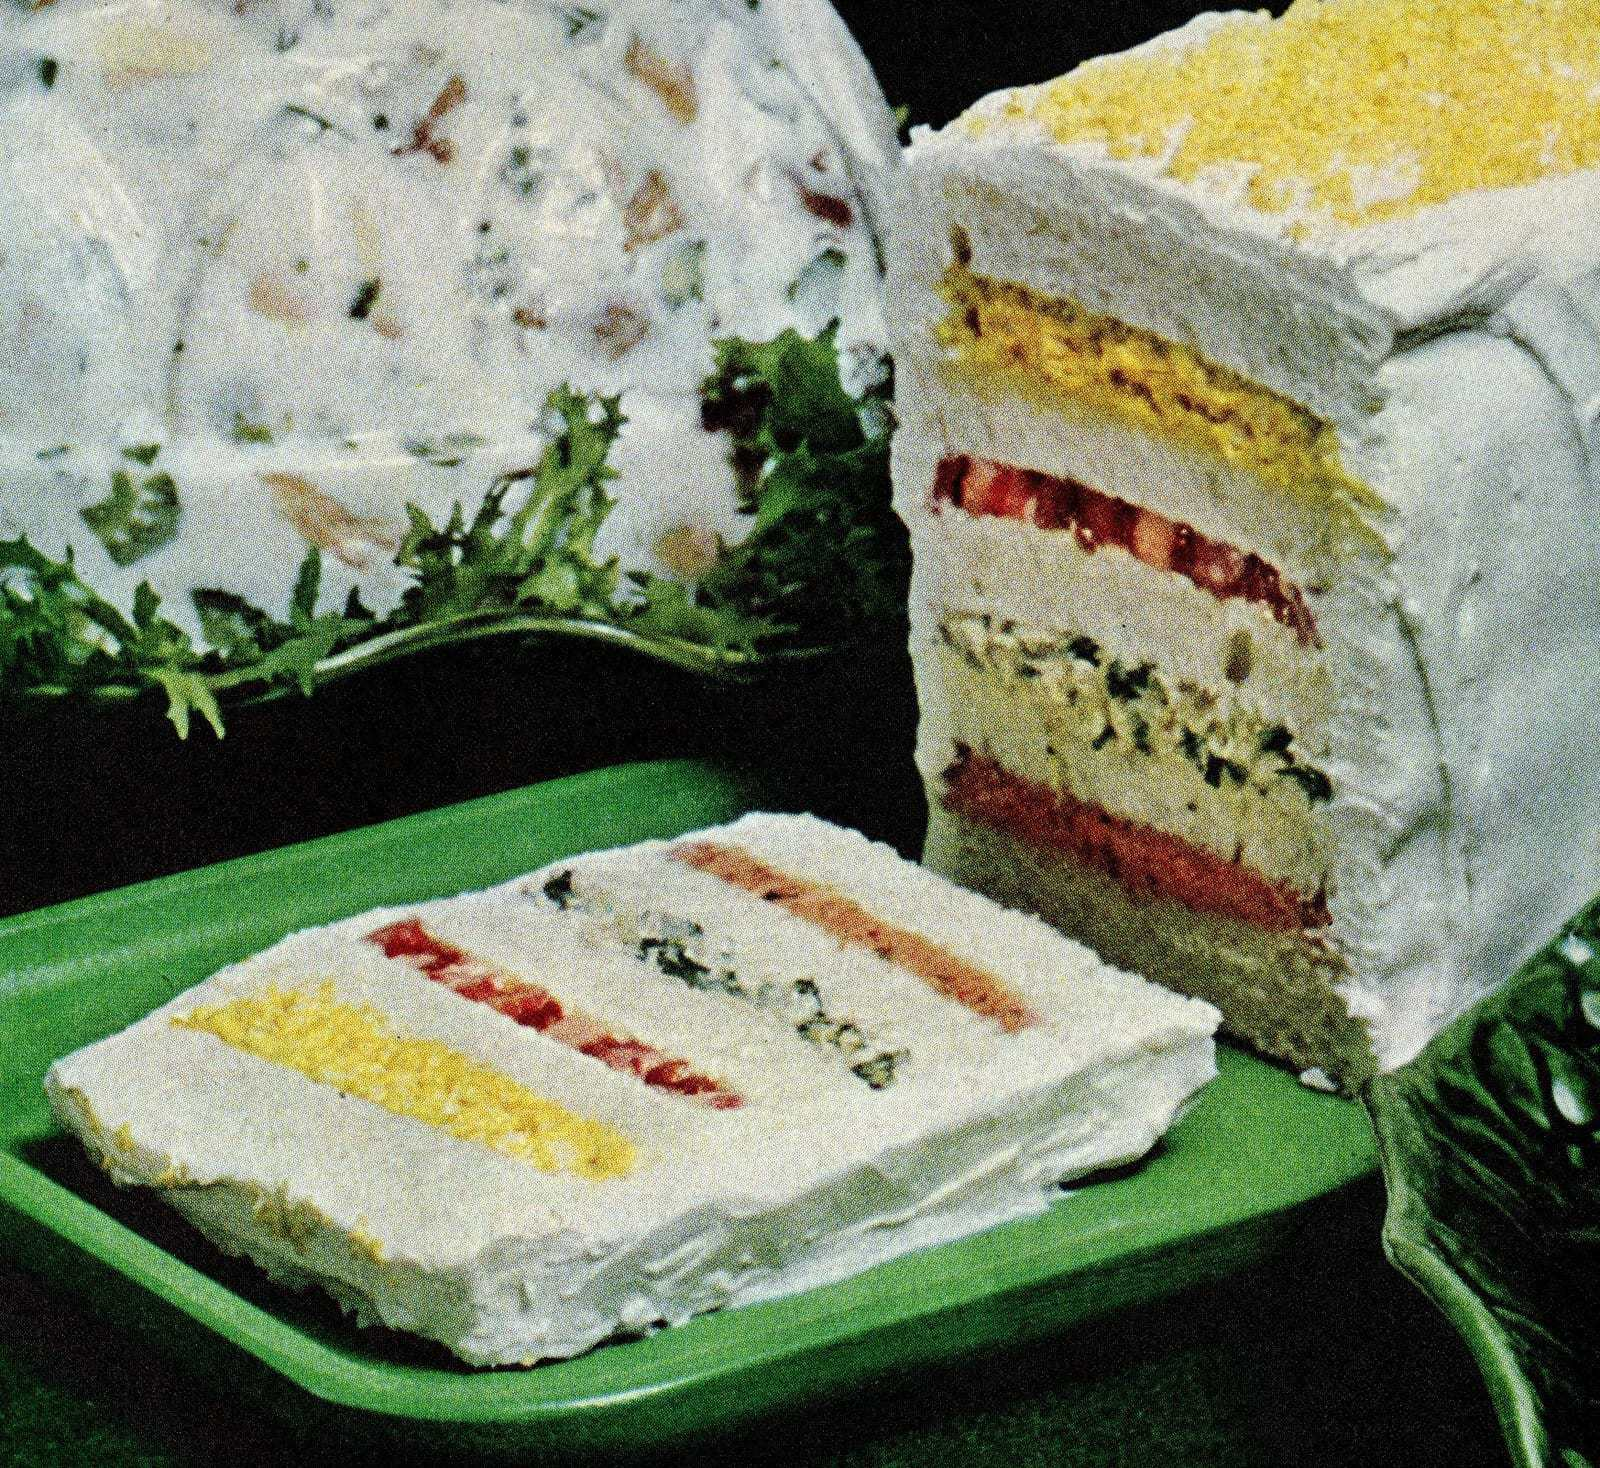 Frosted layered sandwich loaf recipe (1965)